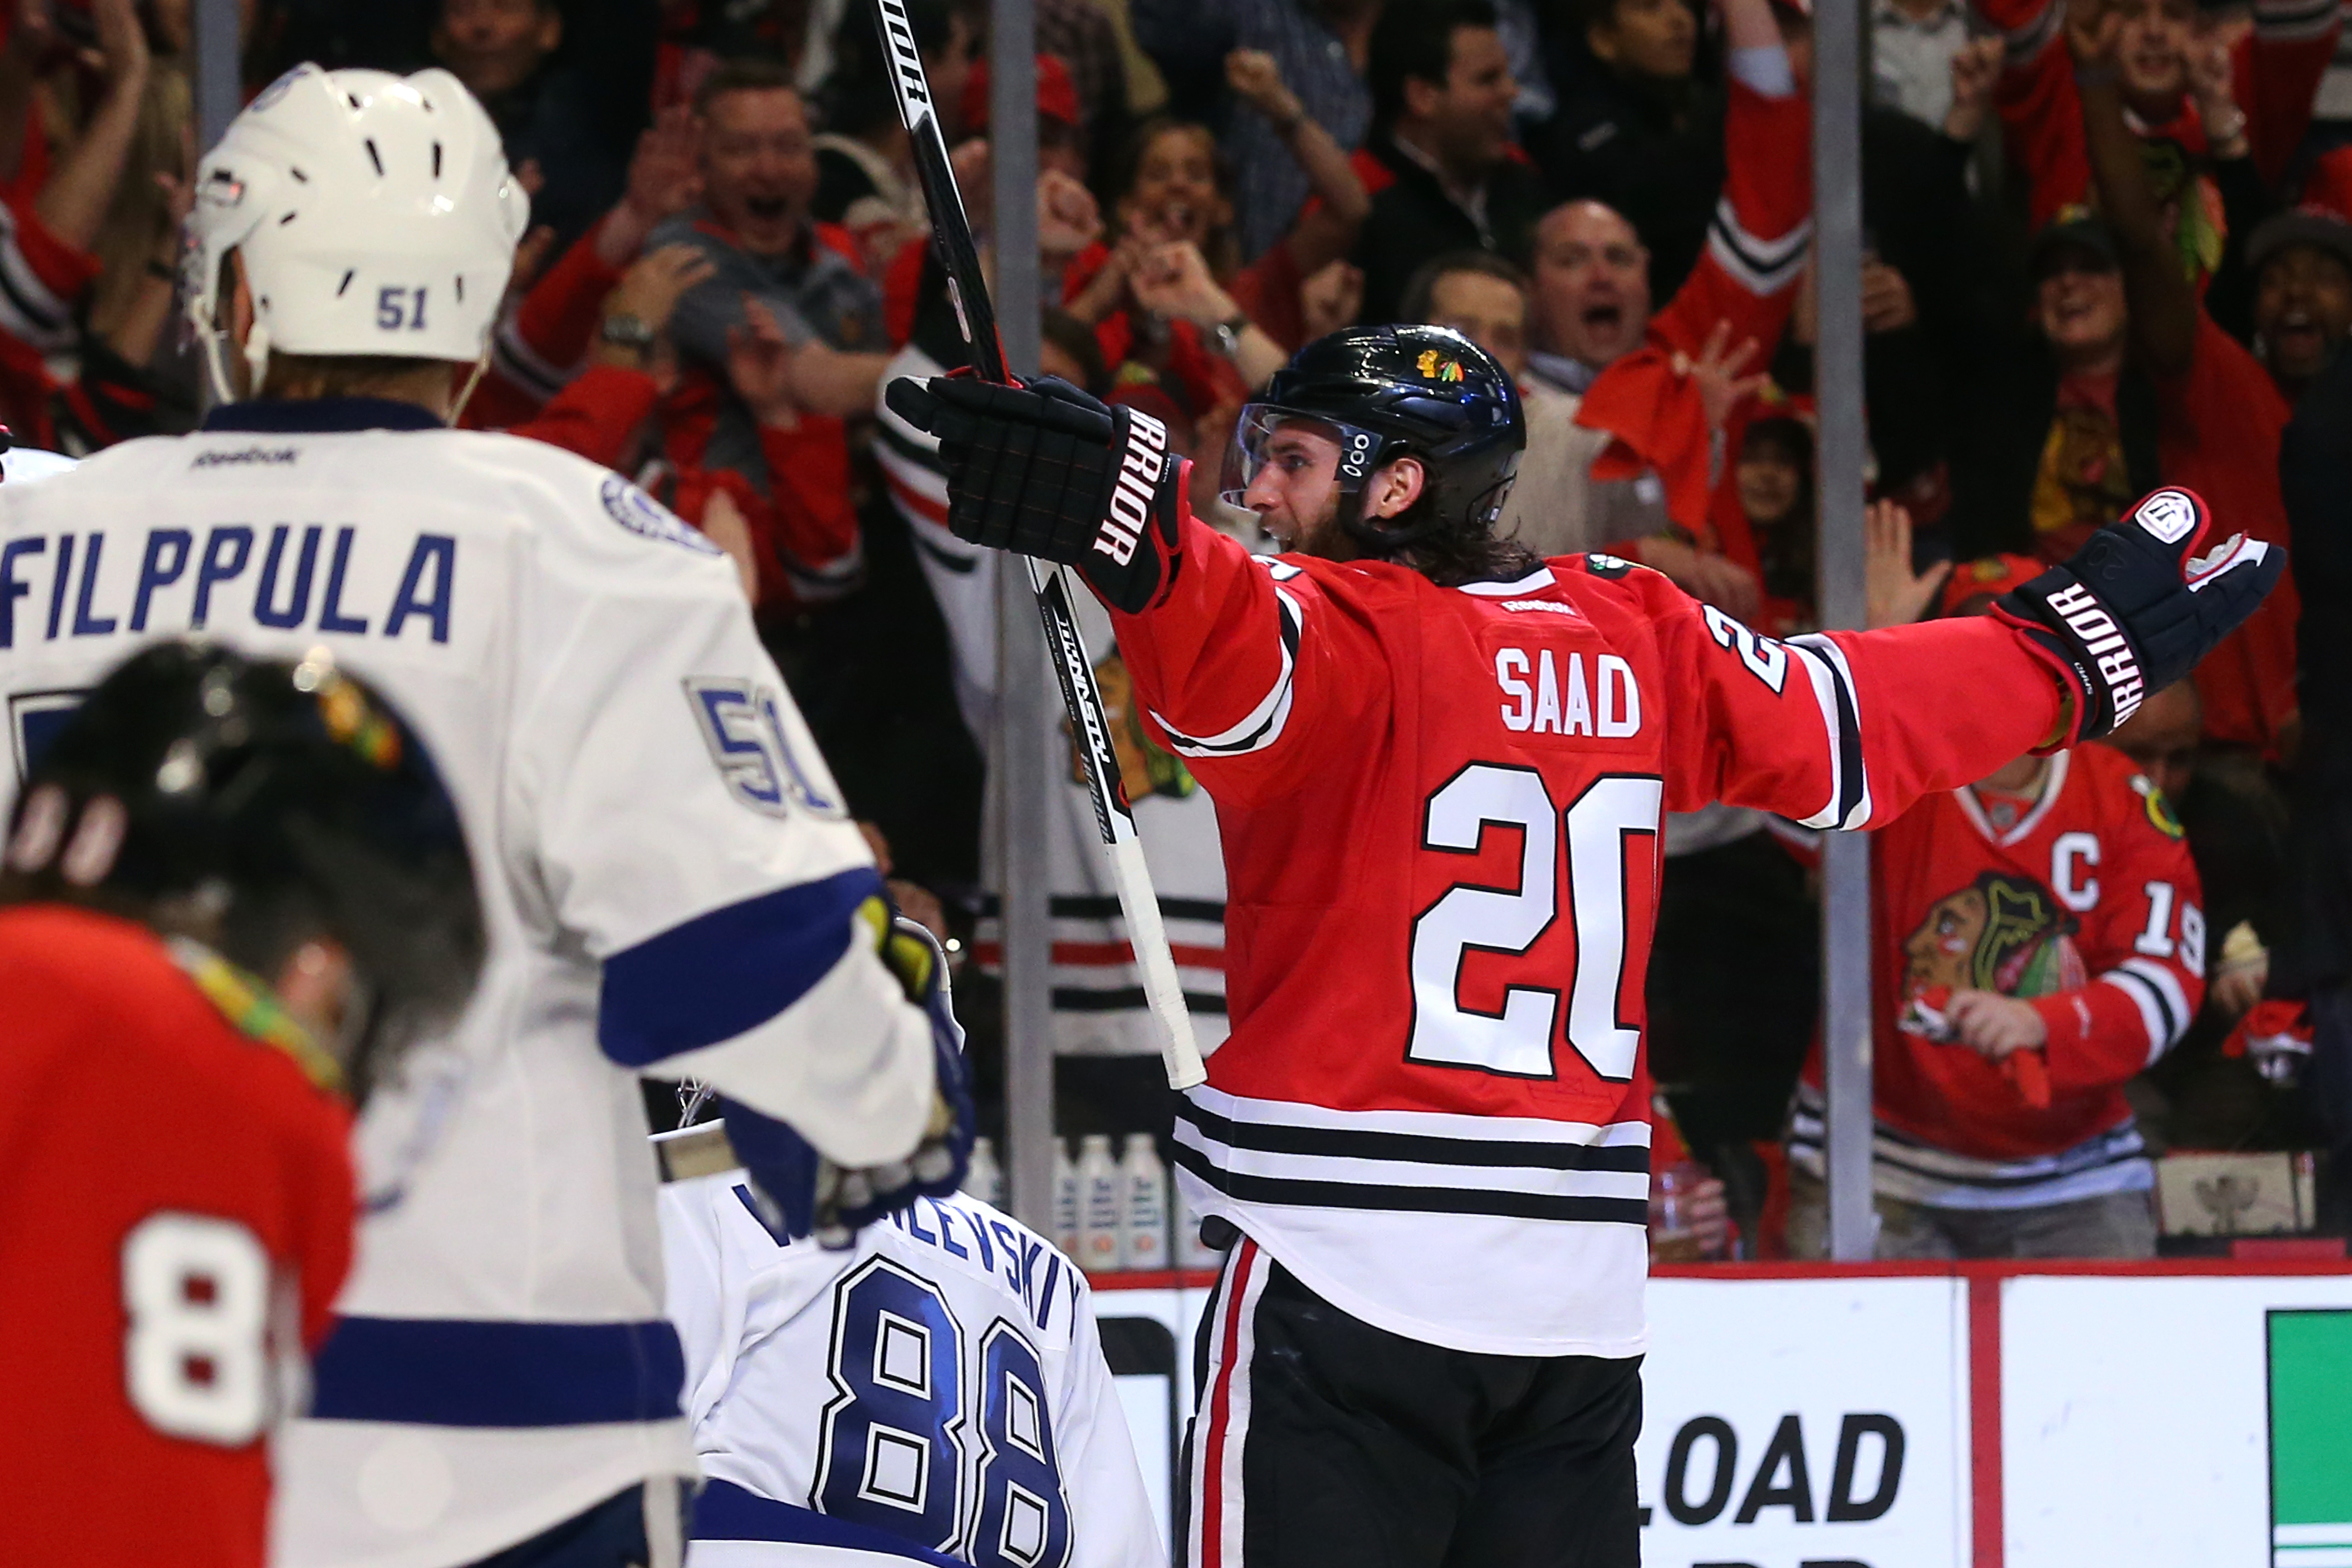 Lightning vs. Blackhawks 2015 Game 4 results: Chicago evens series with 2-1 win